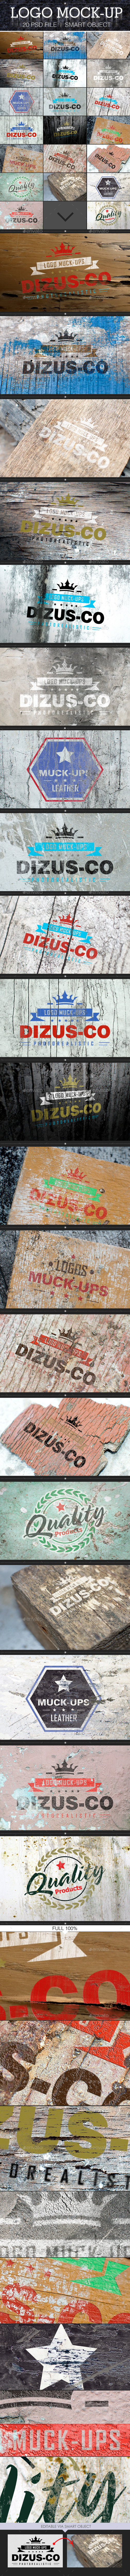 GraphicRiver Logo Mock-ups 9589884